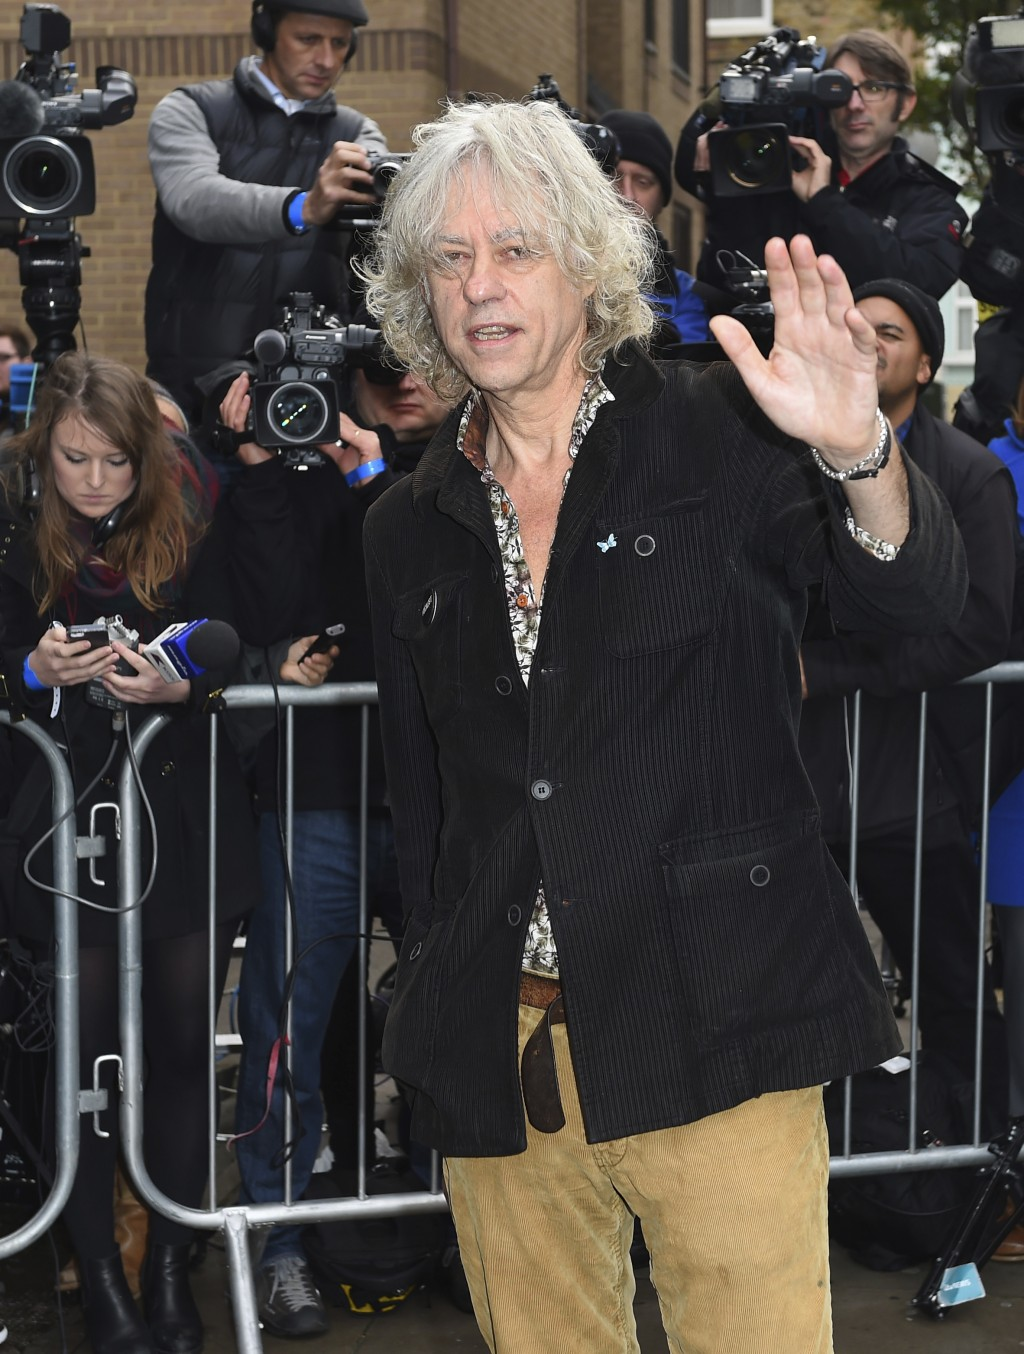 FILE - In this Nov. 15, 2014 file photo, singer Bob Geldof arrives at a music studio to record his segment of the new Band Aid 30 charity single in Lo...